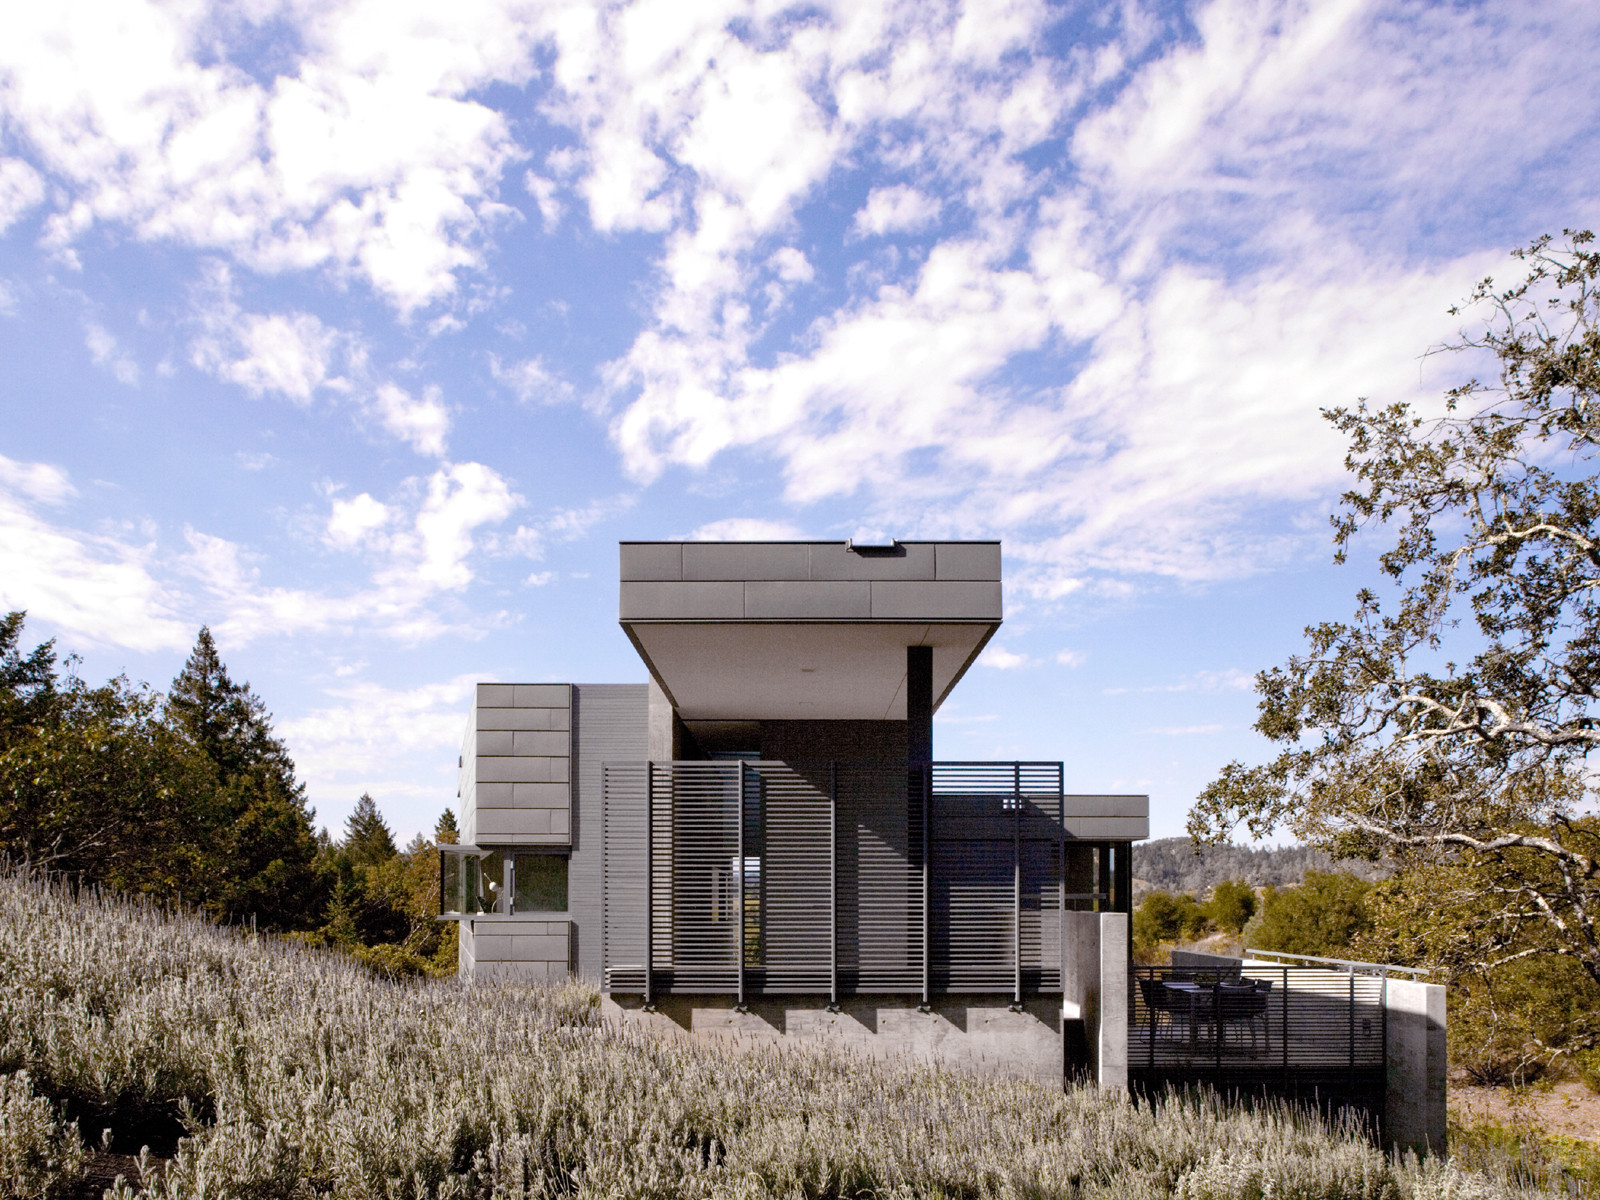 AIA Names its 2014 Small Projects Awards Winners, Small House / Cooper Joseph Studio. Image © Elliot Kaufman